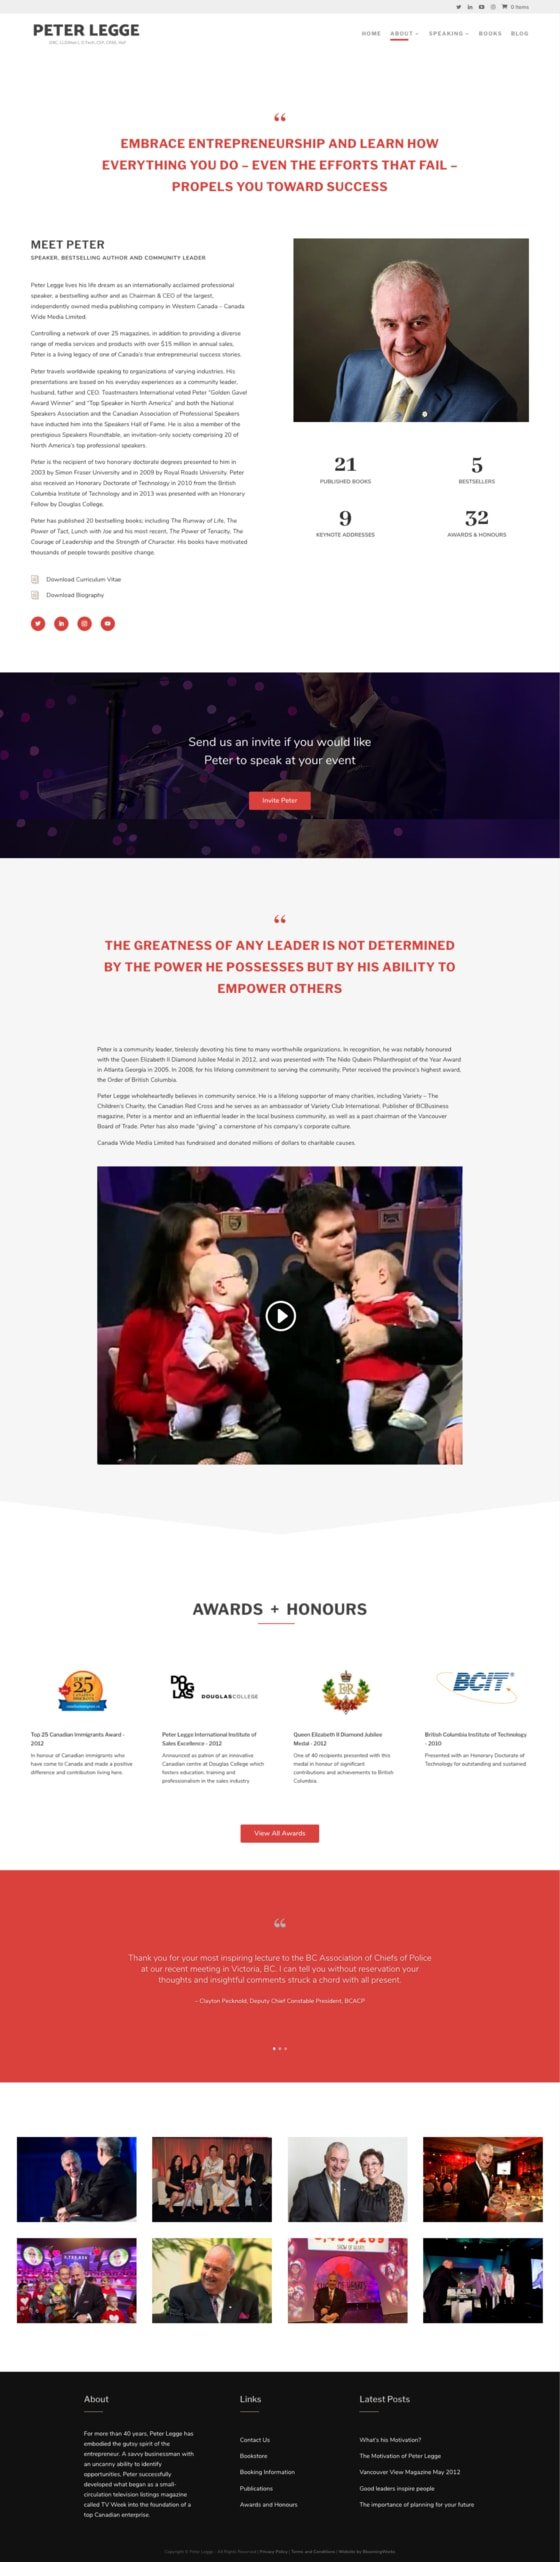 Peter Legge Website Design About Page